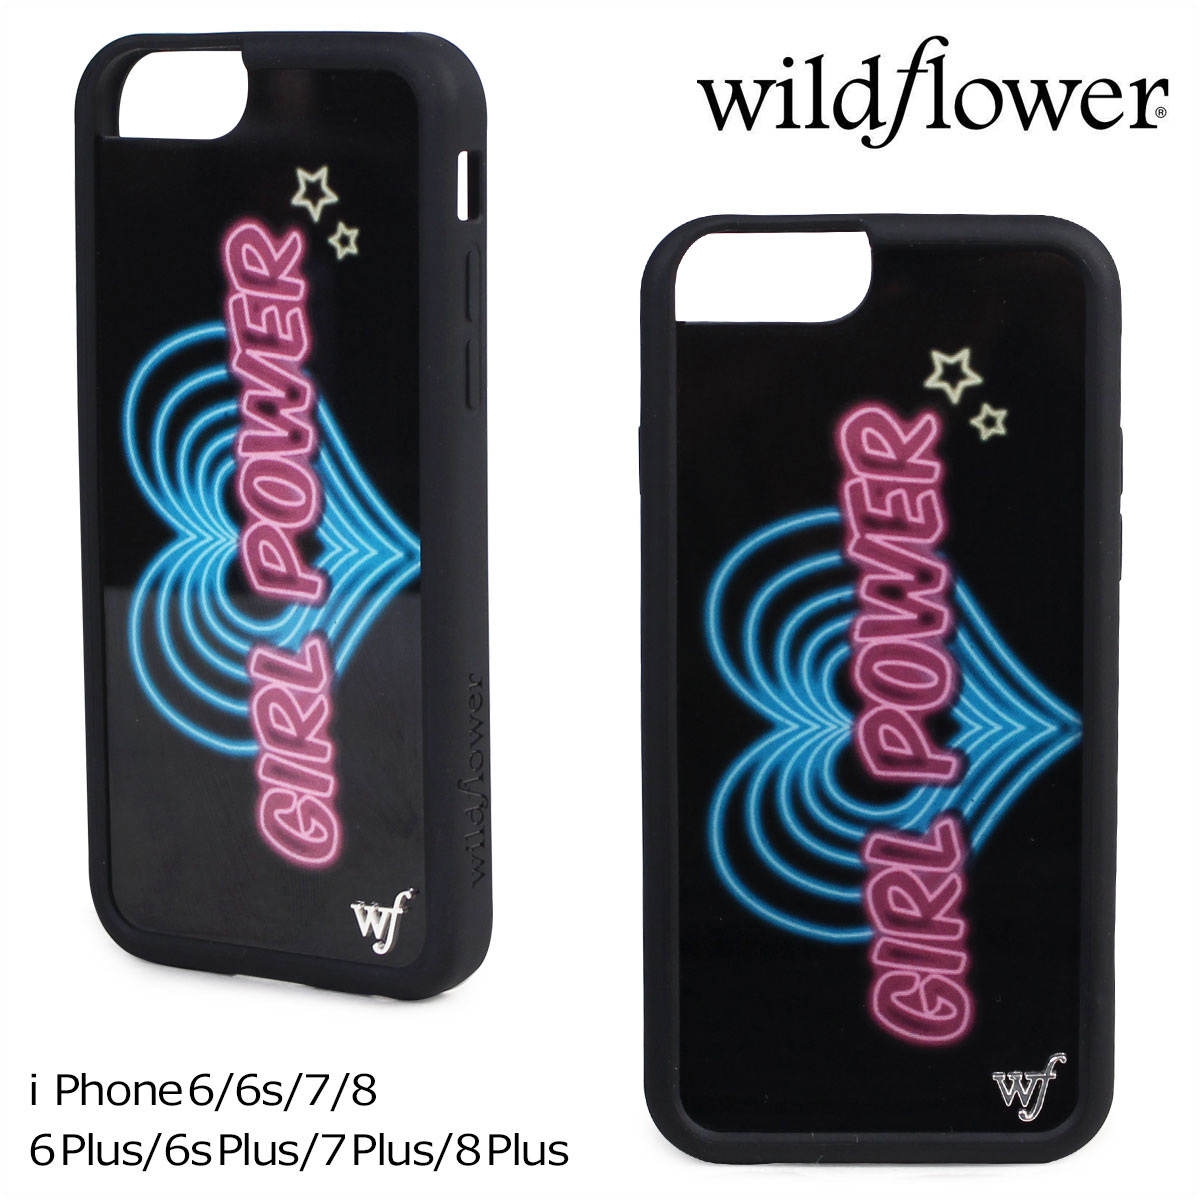 new style af790 c5776 wildflower iPhone8 7 iPhone 6 6s wild flower case smartphone eyephone  Lady's black GIRL